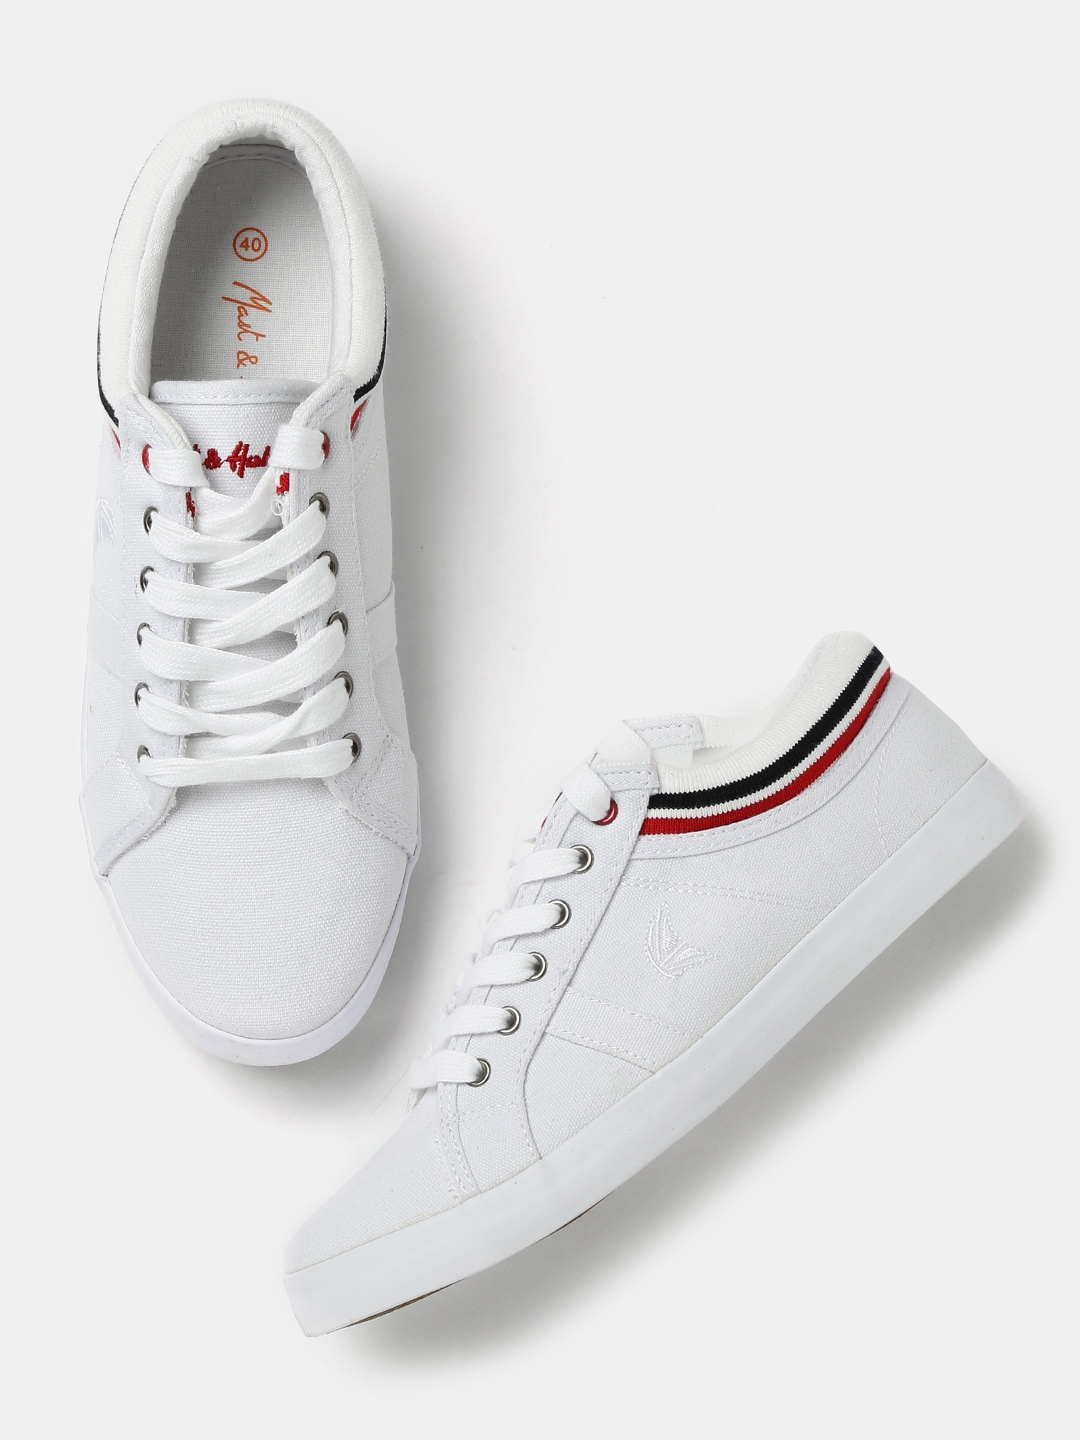 Buy Mast & Harbour Men's White Colored Sneakers Online at Best Price in India